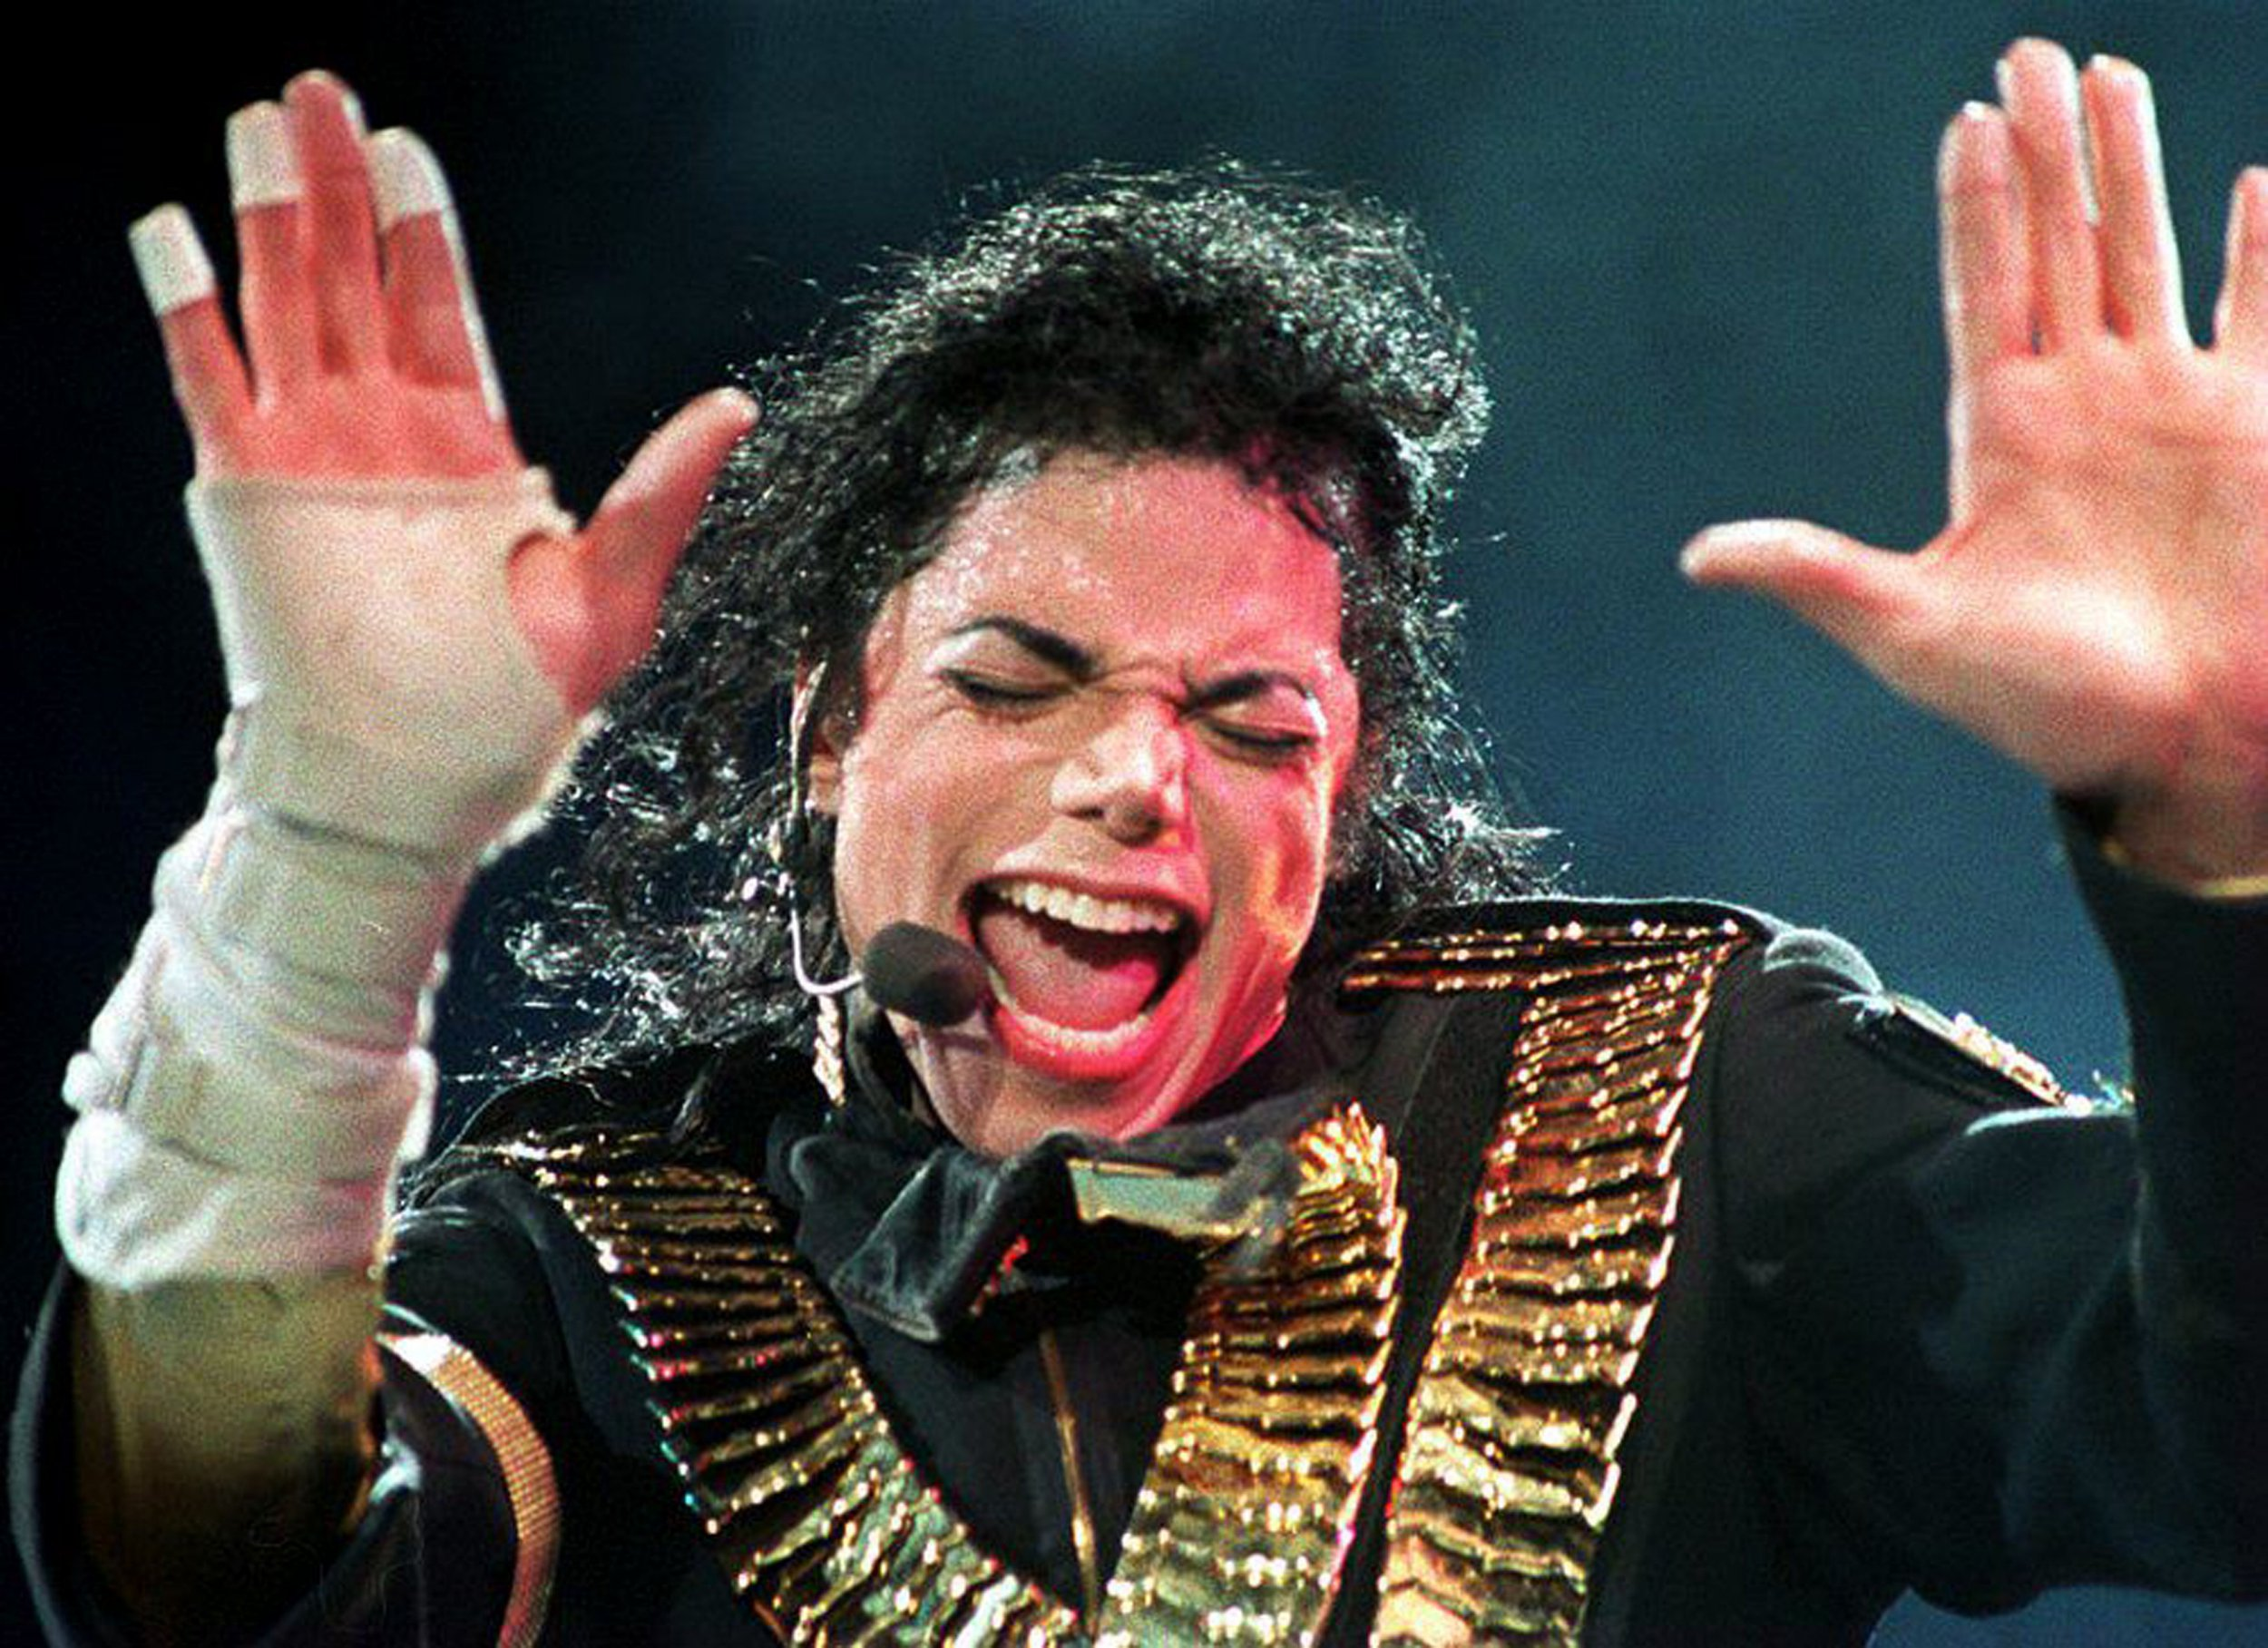 """(FILES) In this file photo taken on August 31, 1993, US pop megastar Michael Jackson performs during his """"Dangerous"""" tour in Singapore. - Celebrity talk show host Oprah Winfrey waded into the Michael Jackson debate March 4, 2019, hosting an hour-long interview of the men who say the late superstar sexually abused them as minors. The special aired on HBO after the conclusion of the network's presentation of a bombshell four-hour documentary entitled """"Leaving Neverland,"""" which has thrown the late Jackson's legacy into question nearly a decade after his death. Calling sexual abuse """"a scourge on humanity,"""" Winfrey said """"this moment transcends Michael Jackson. It's much bigger than any one person."""" (Photo by STR / AFP)STR/AFP/Getty Images"""